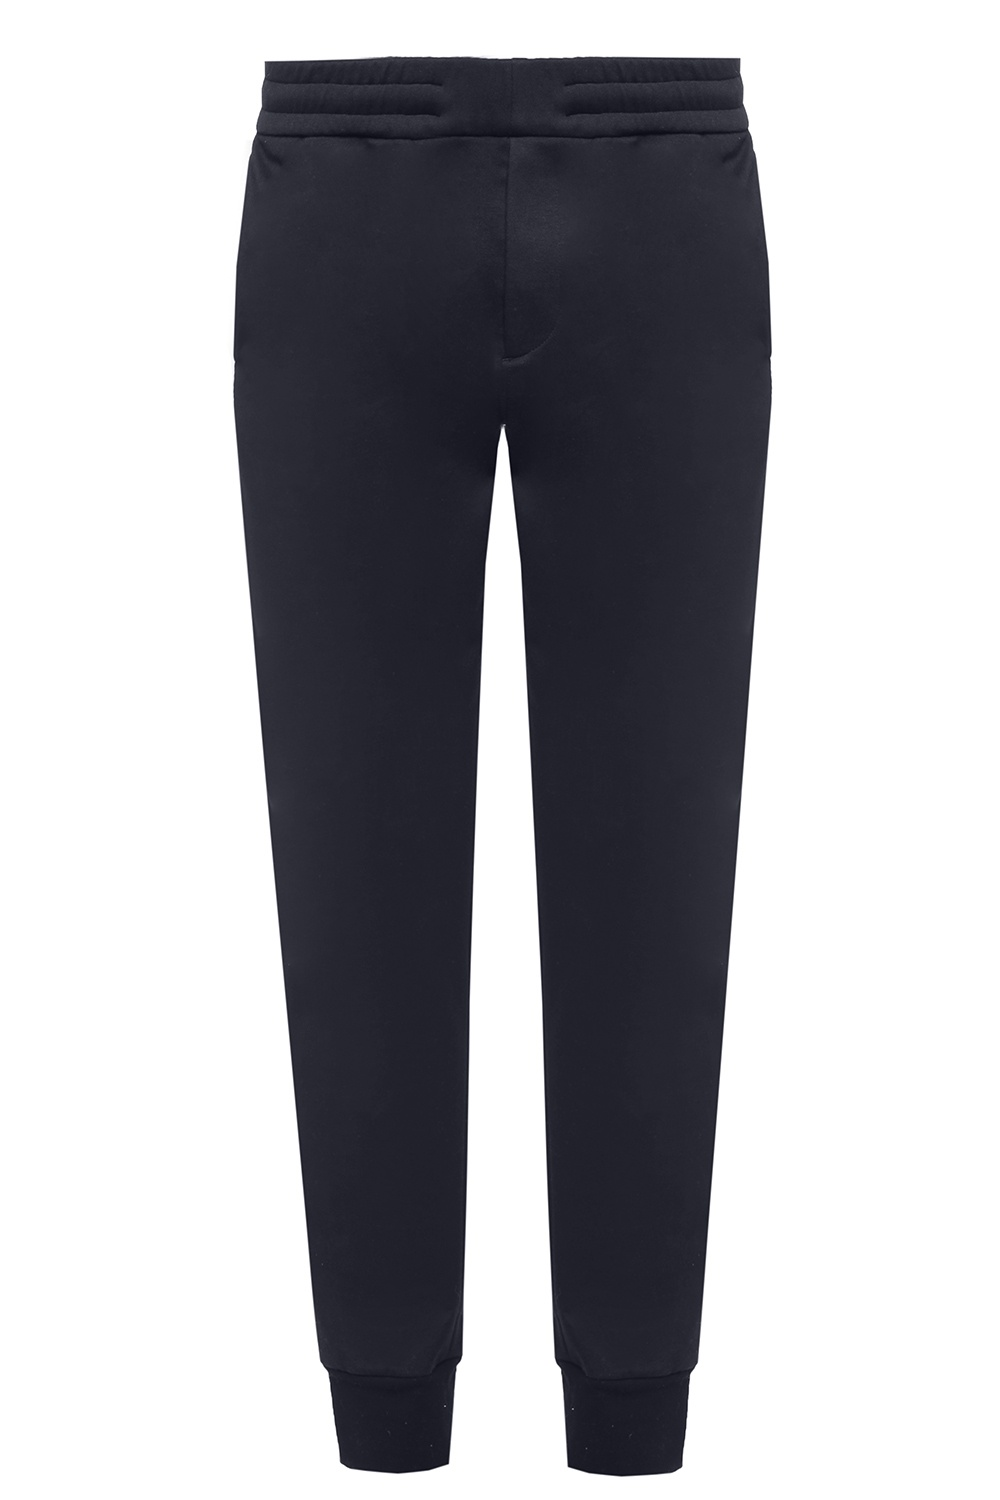 Paul Smith Trousers with elasticated cuffs